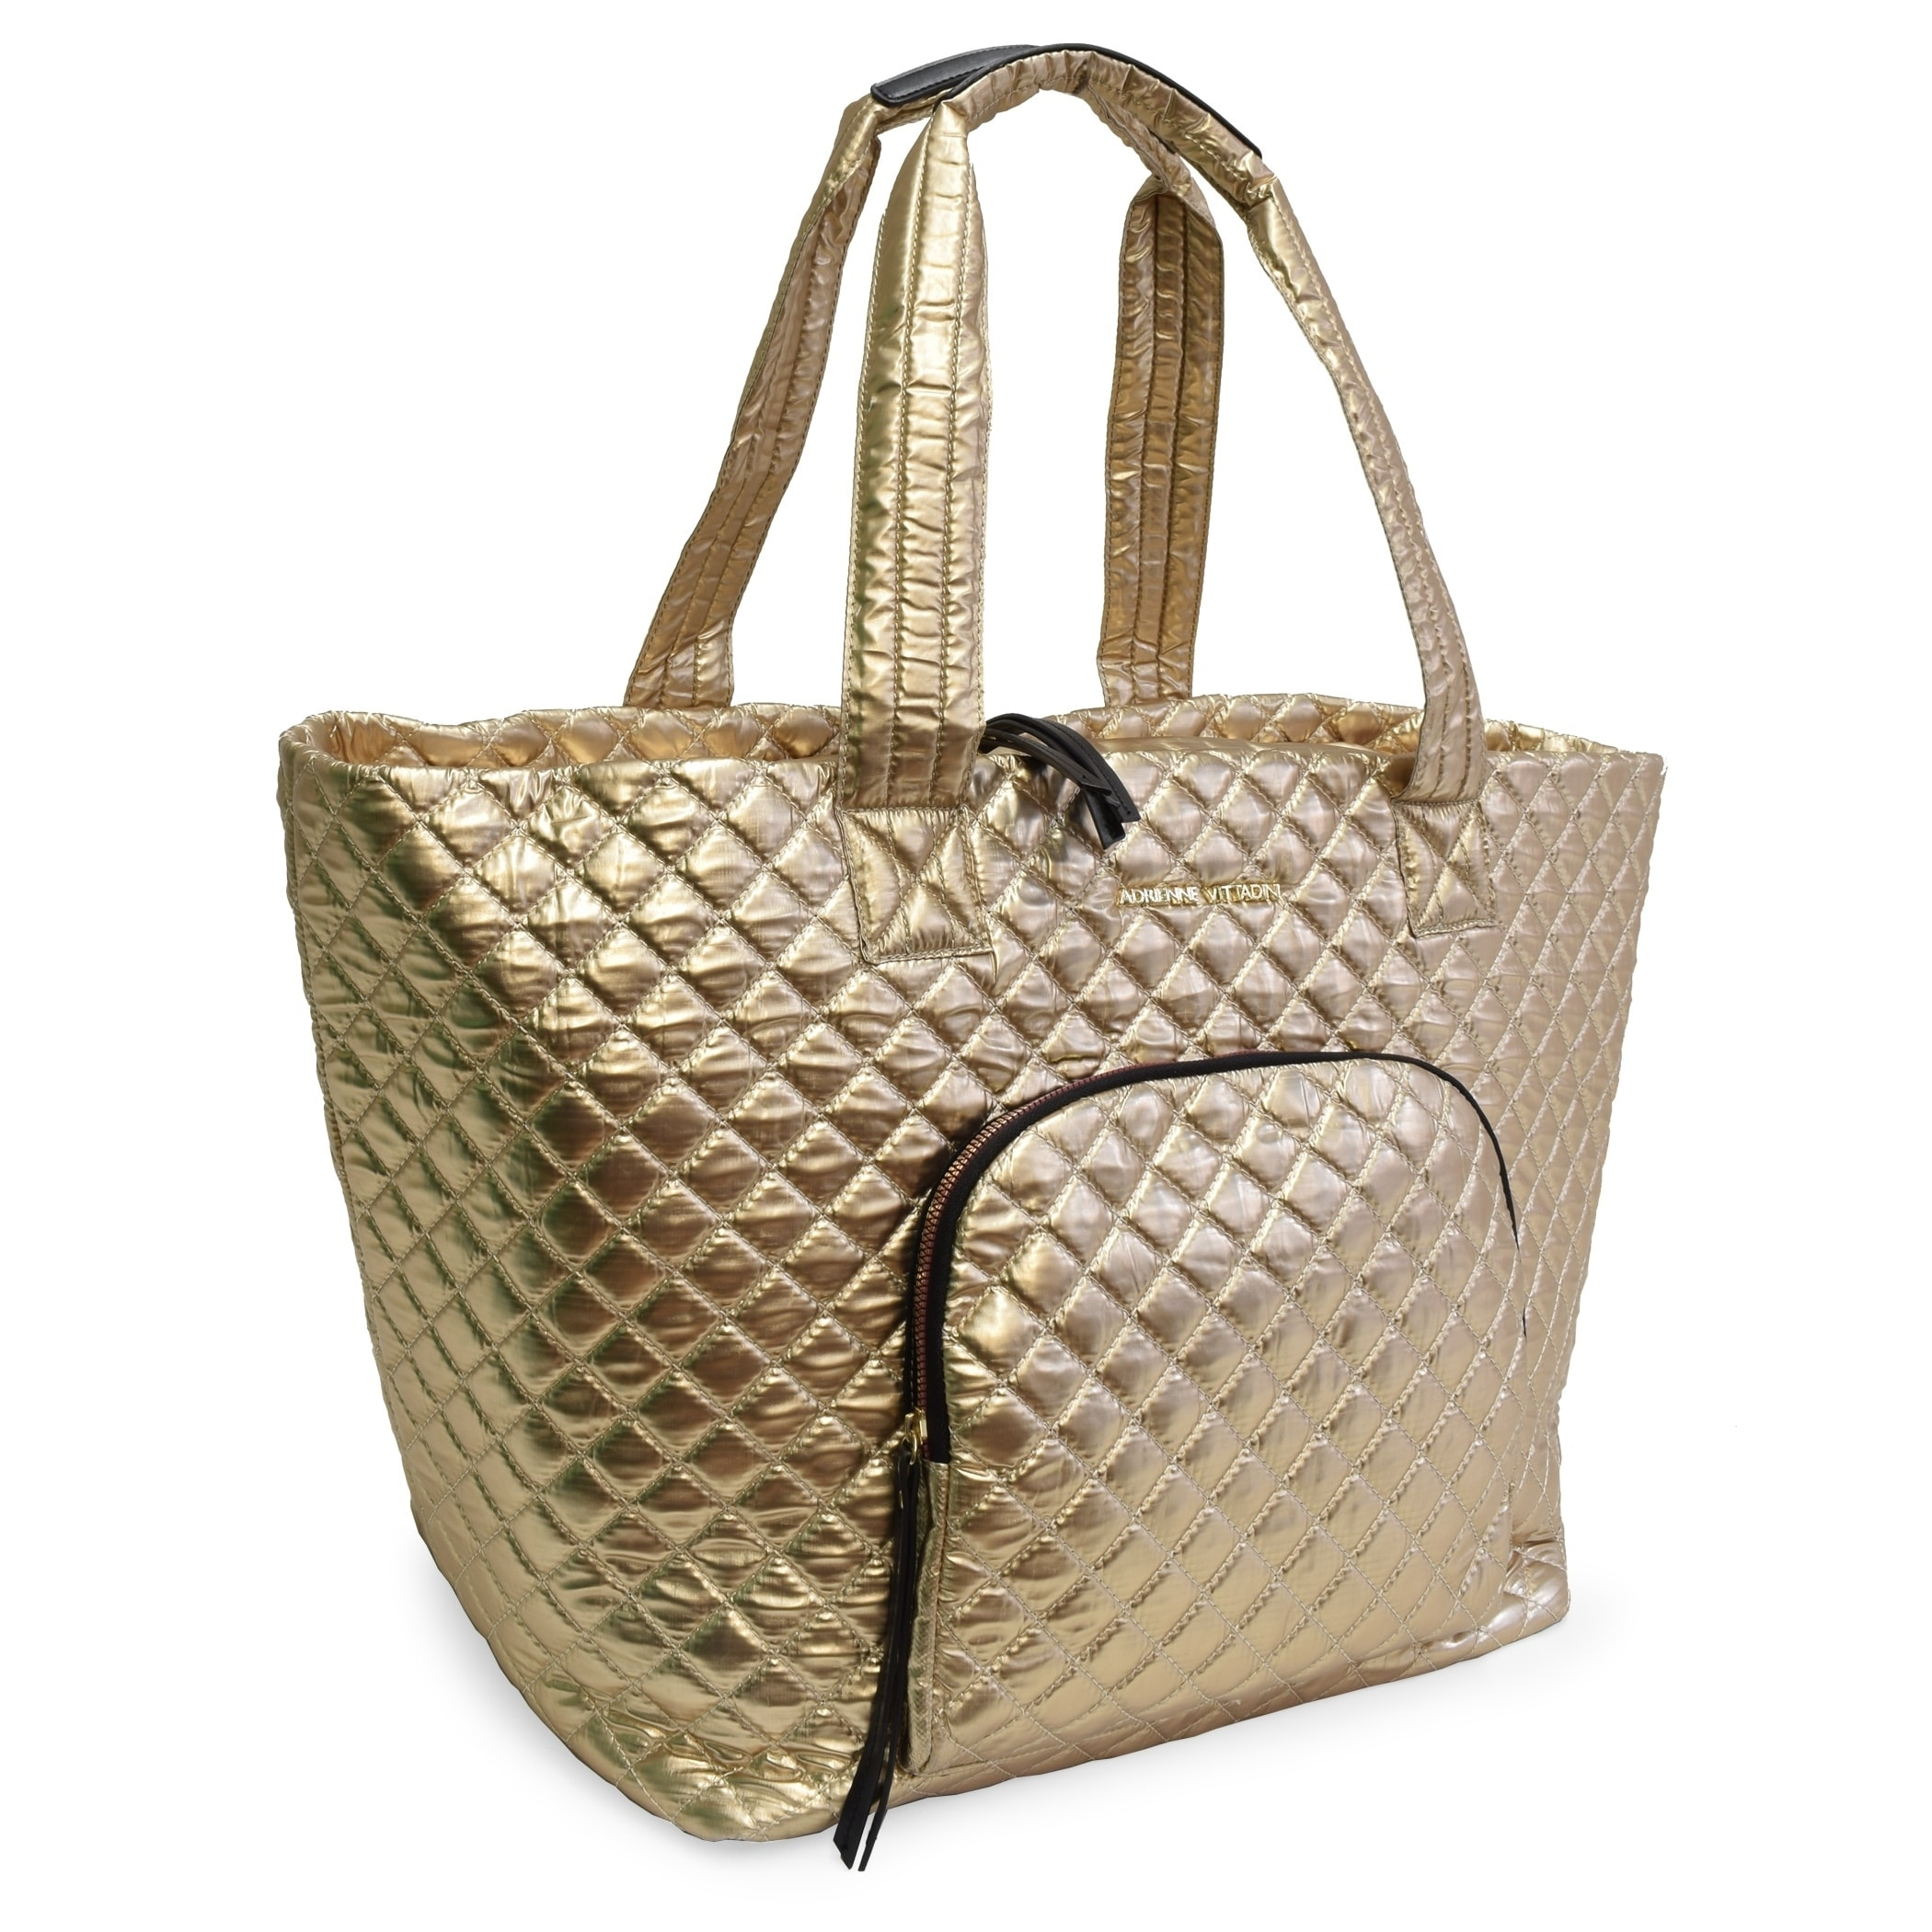 b81d60fac88d Adrienne Vittadini Handbags | Shop our Best Clothing & Shoes Deals Online  at Overstock